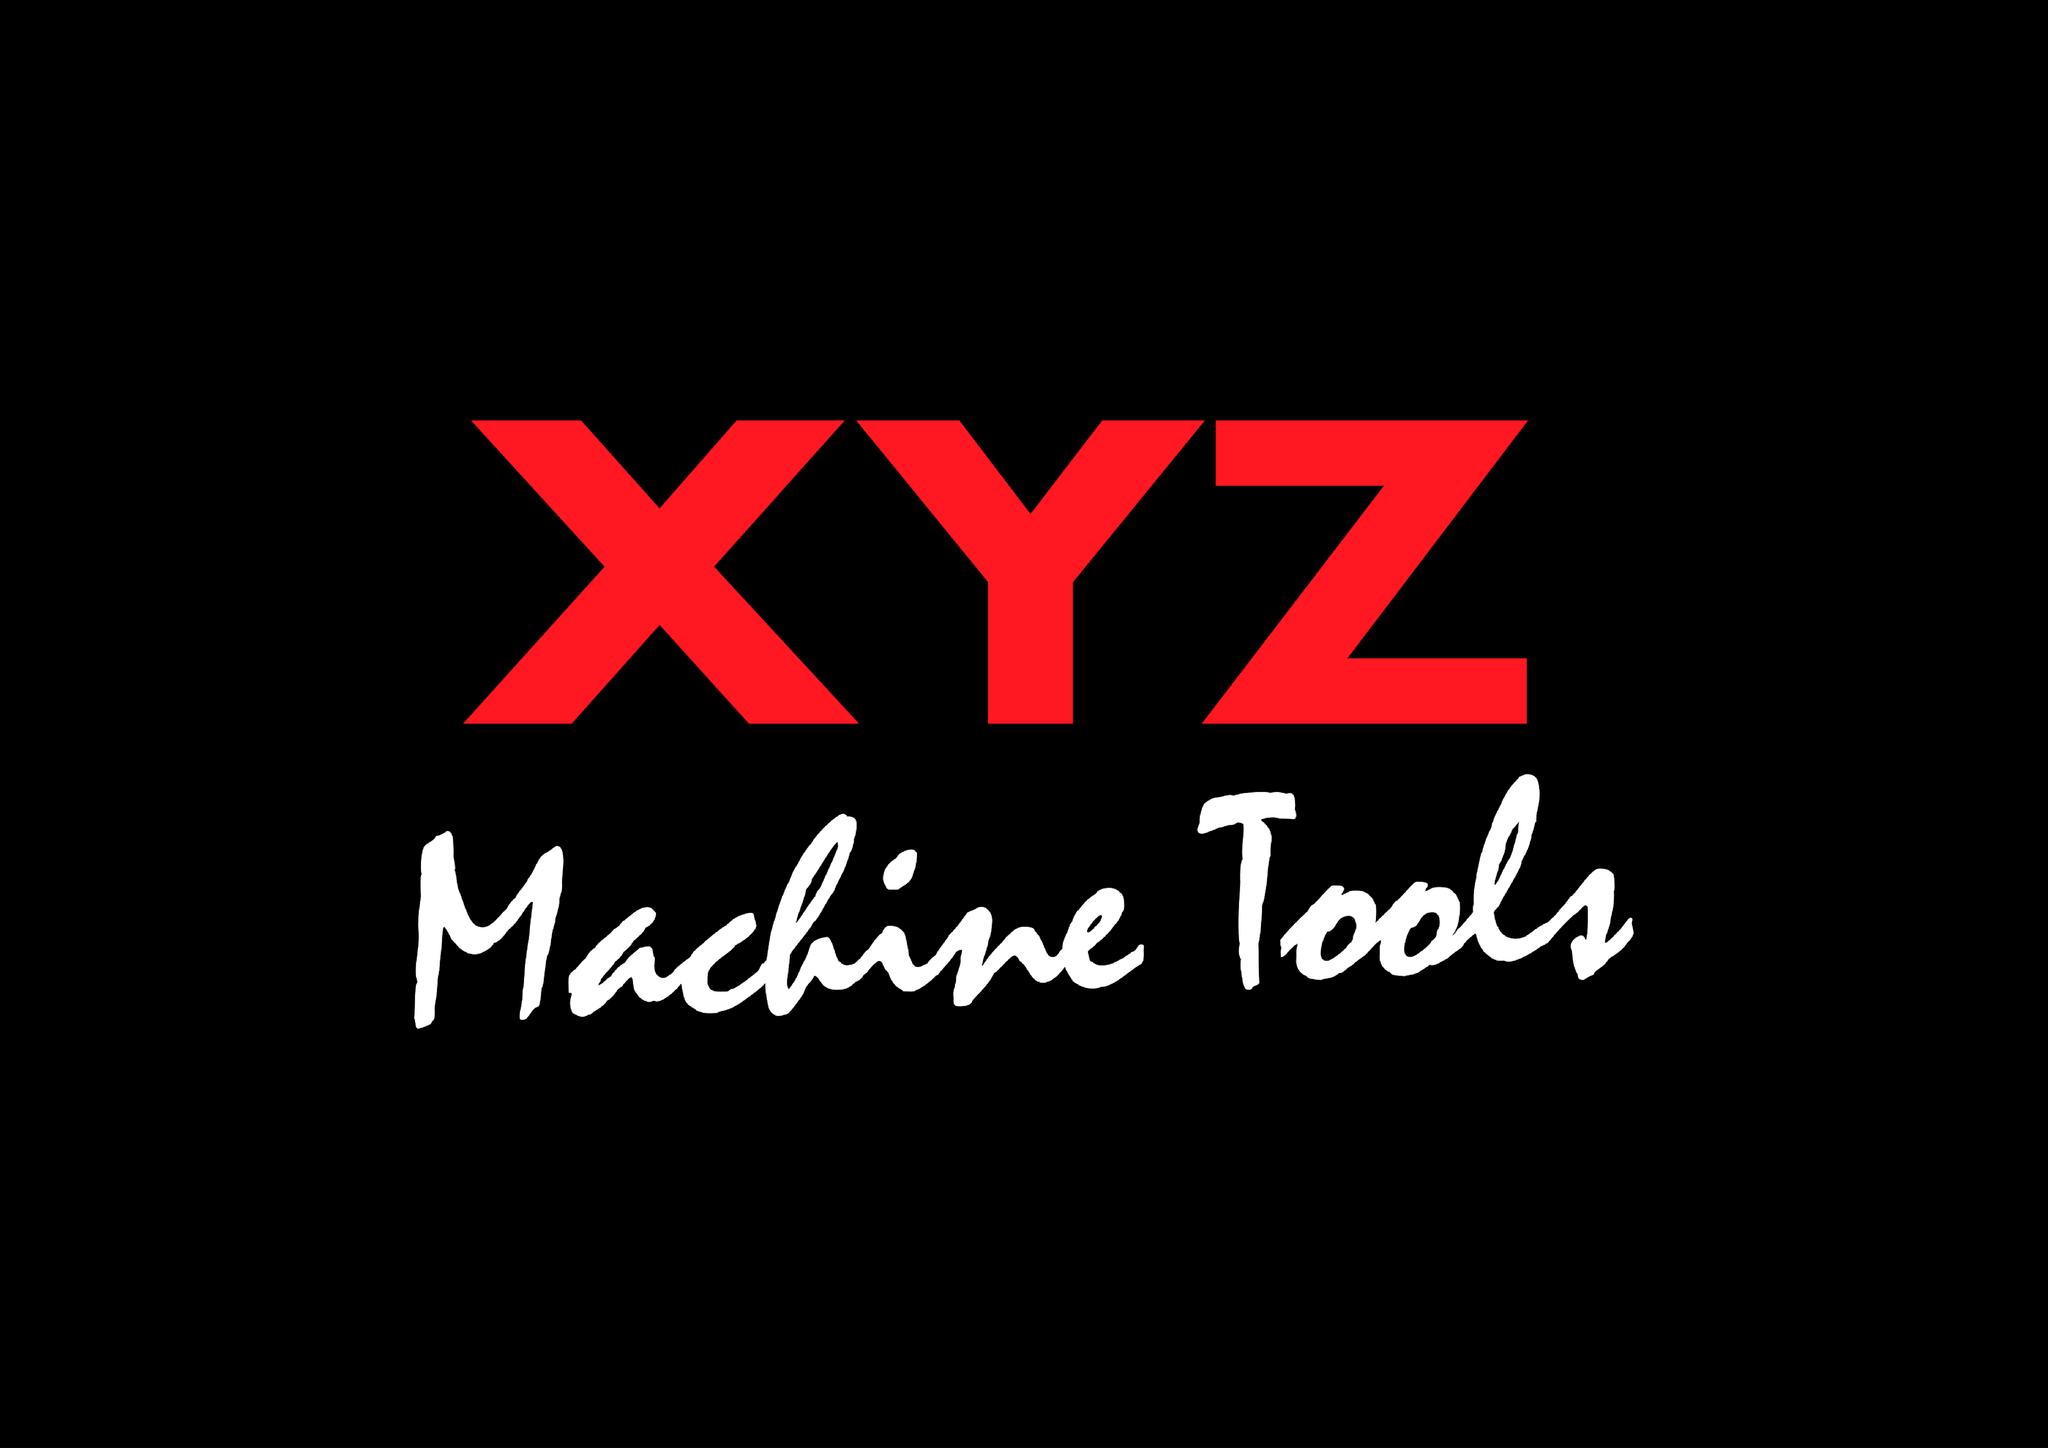 XYZ MACHINE TOOLS LIMITED